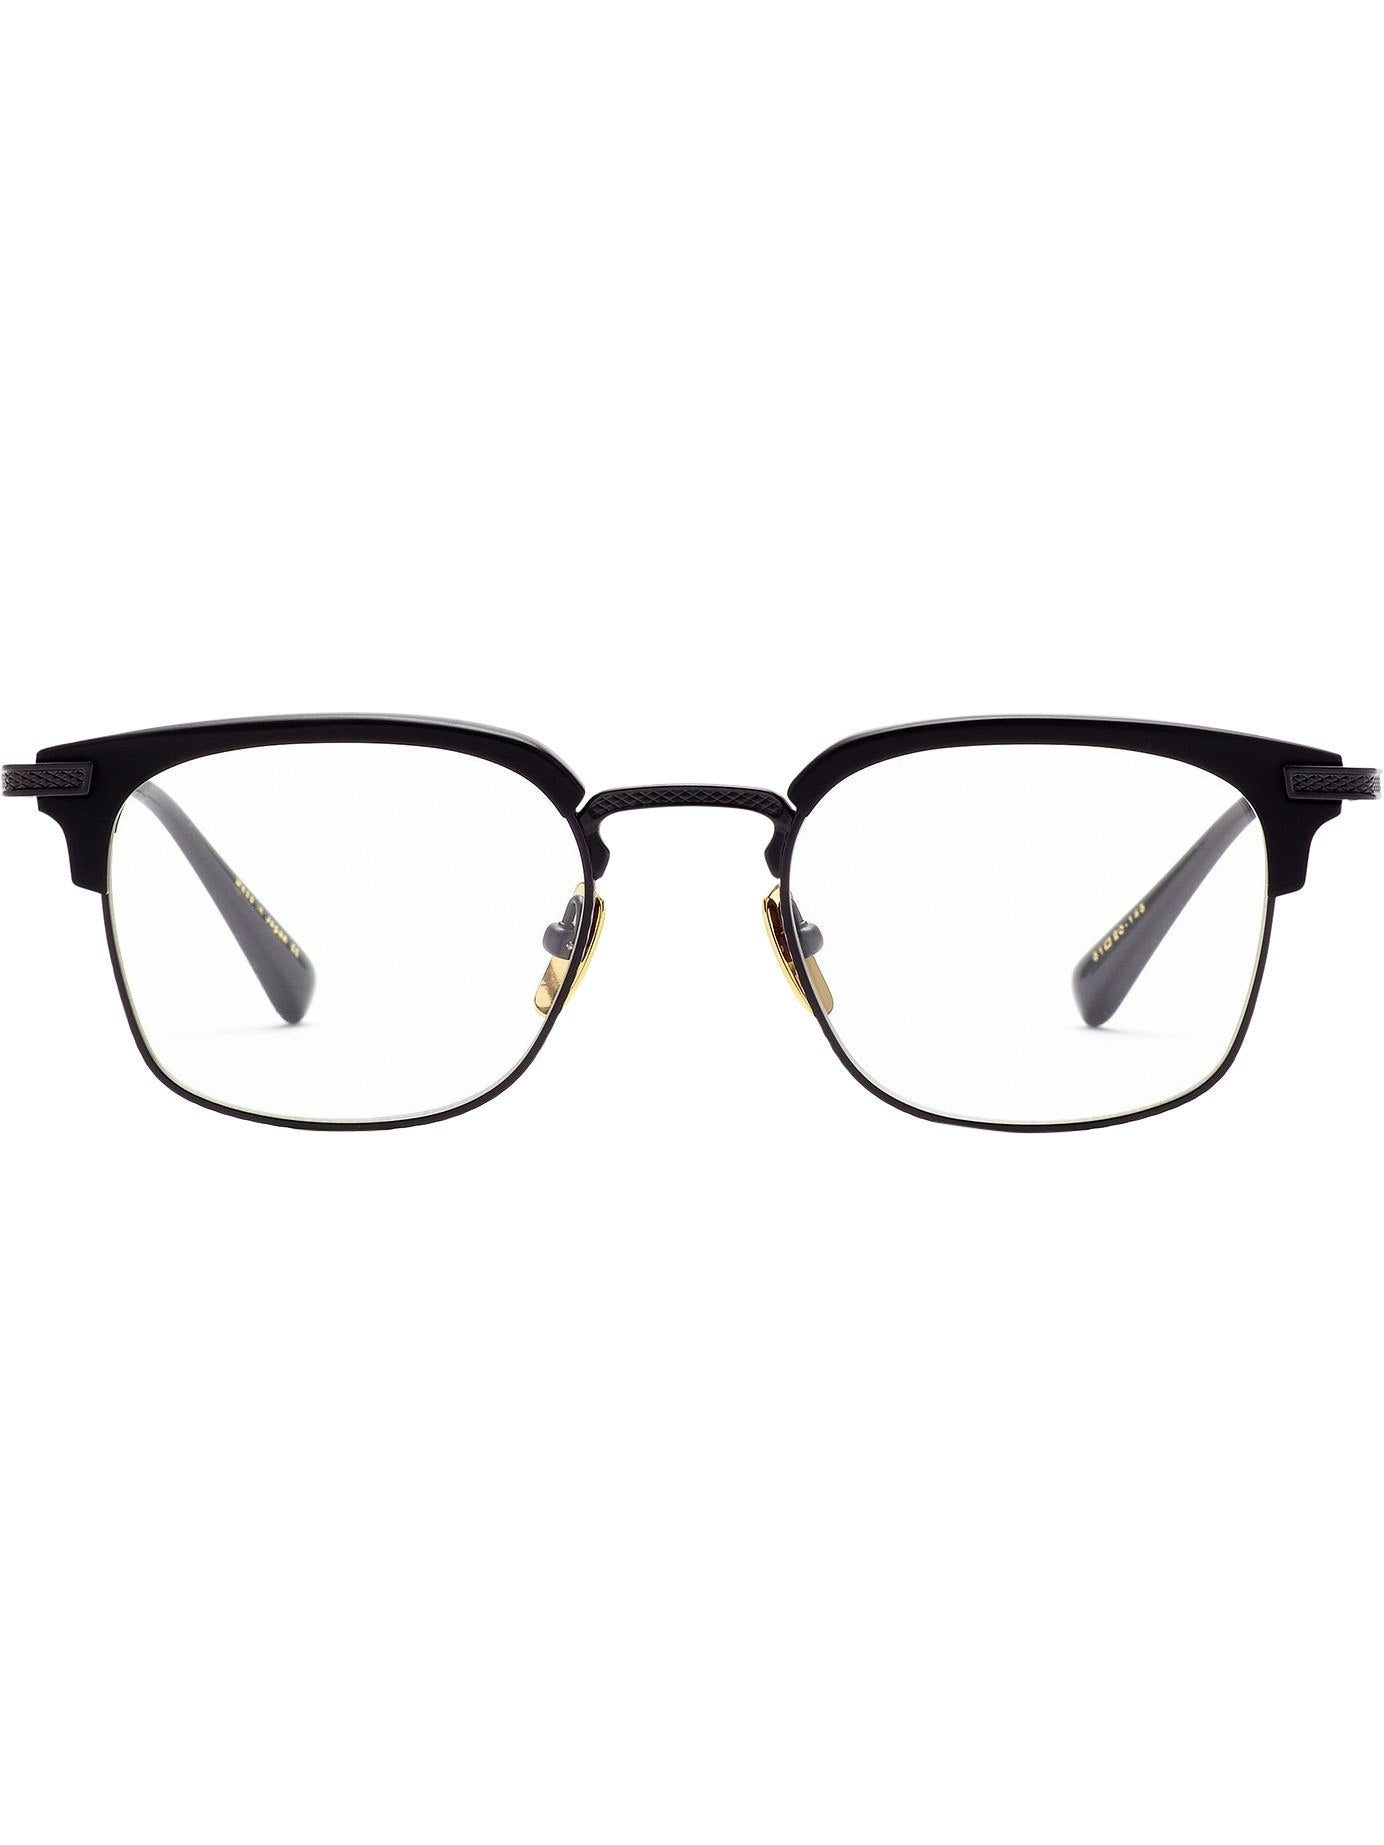 f4387bde45f Optical Frame - Dita Nomad DRX-2080-C Glasses